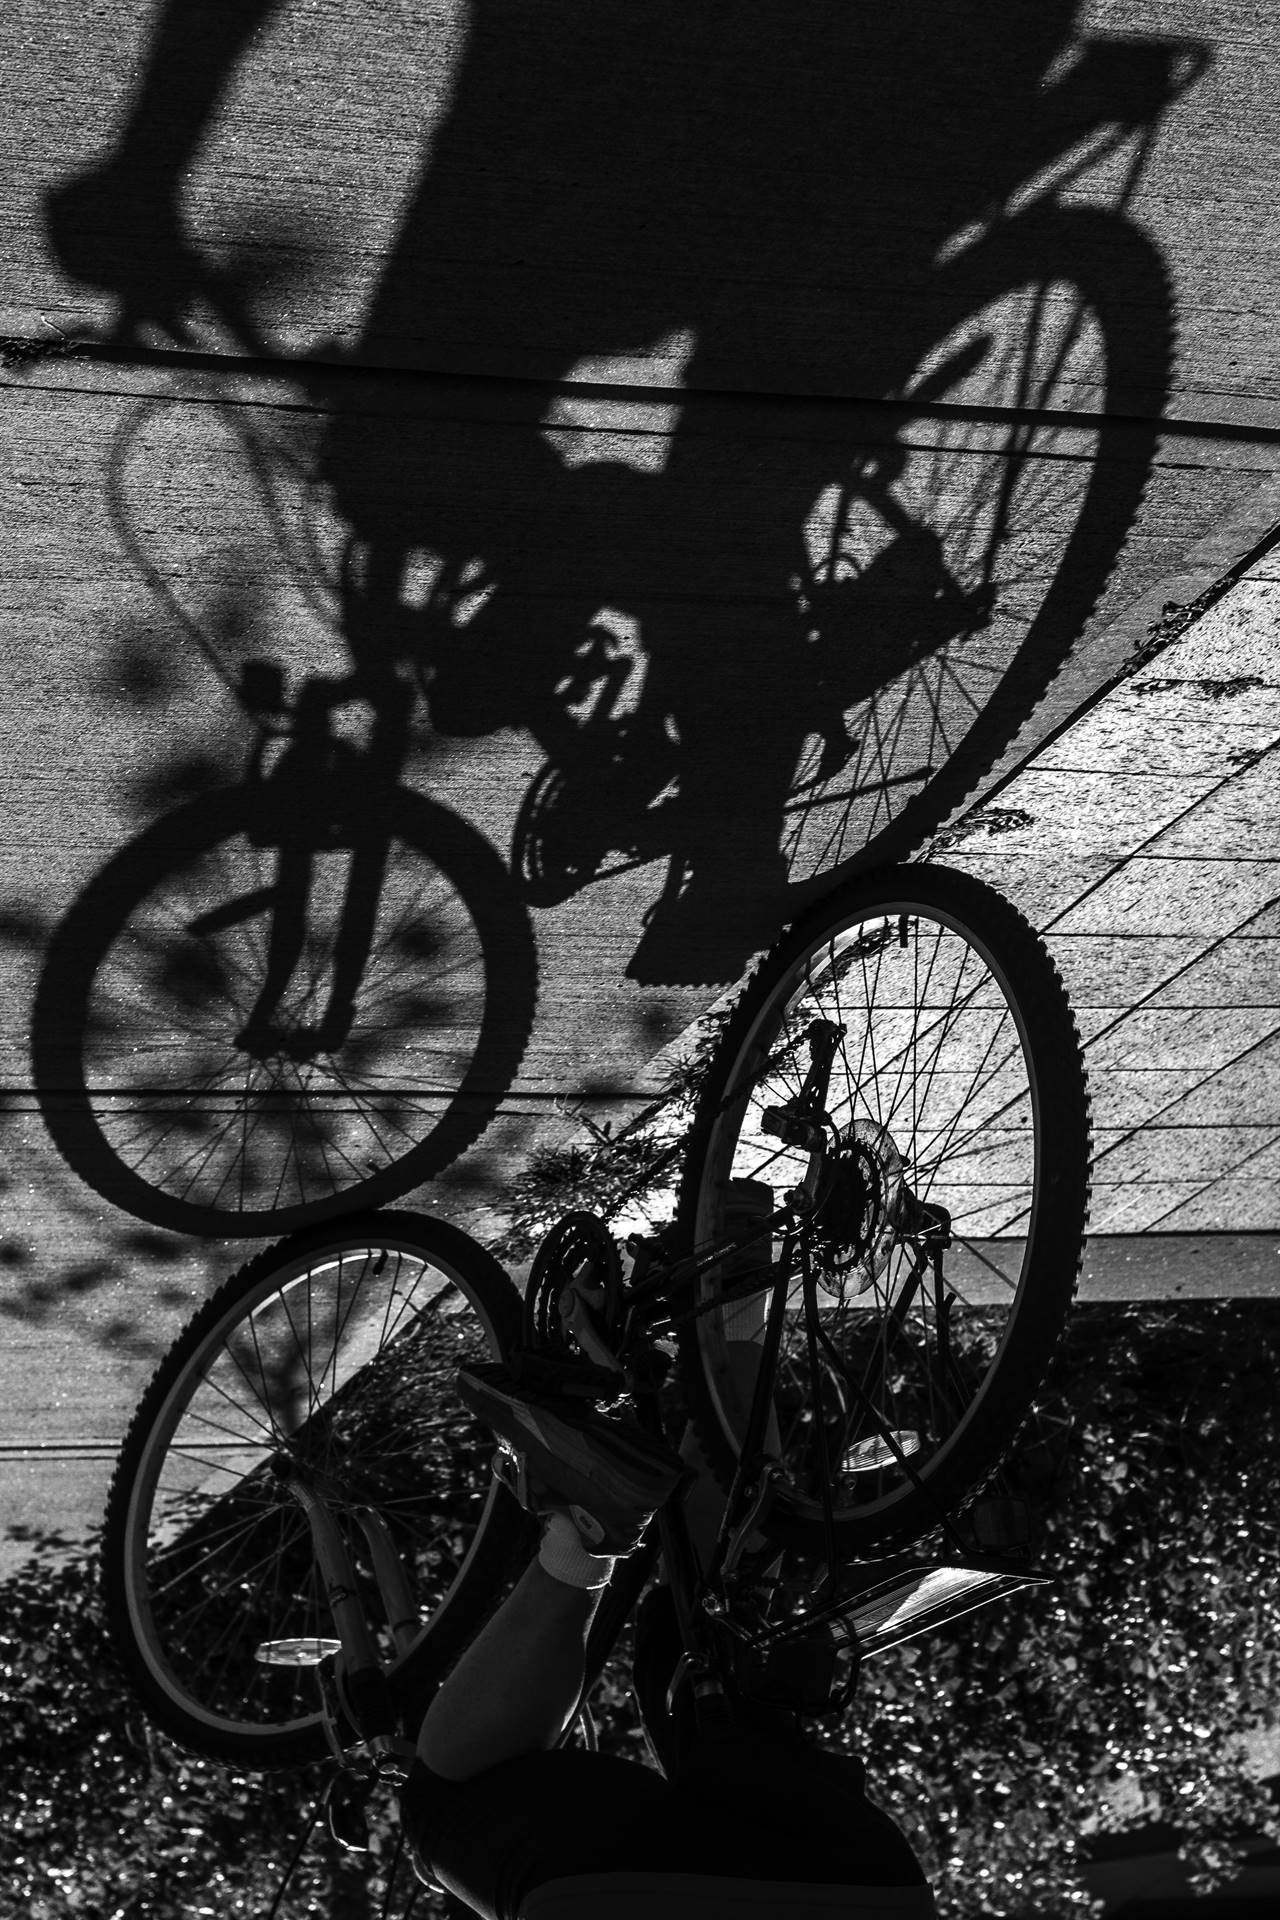 Person on a bicycle and their shadow